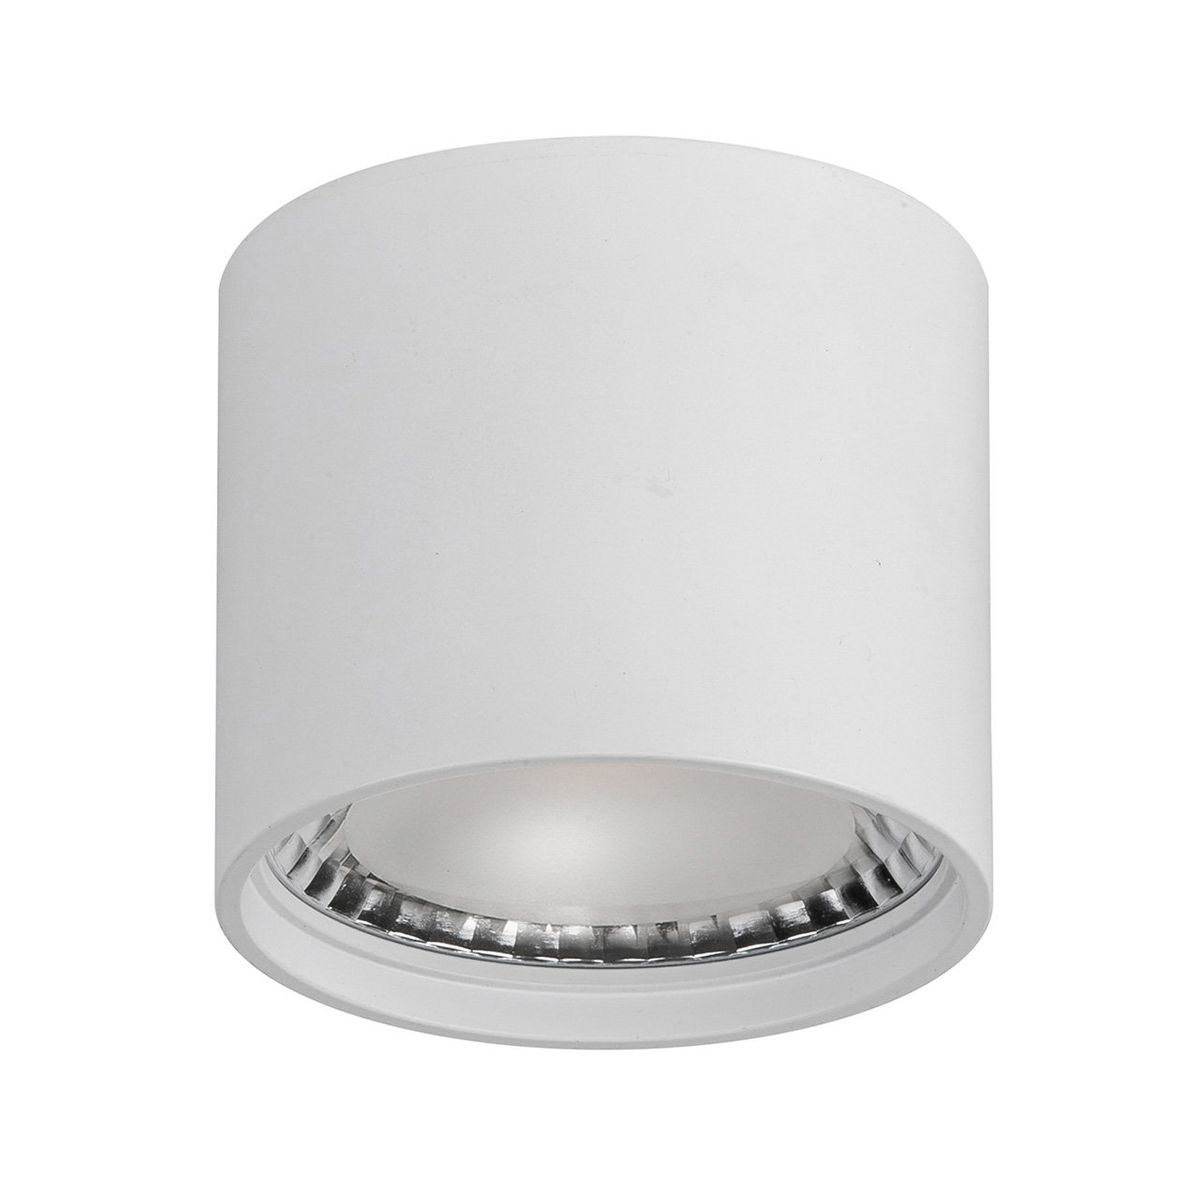 HV5802-WHT - NELLA White 7w Surface Mounted LED Downlight – Bild 1